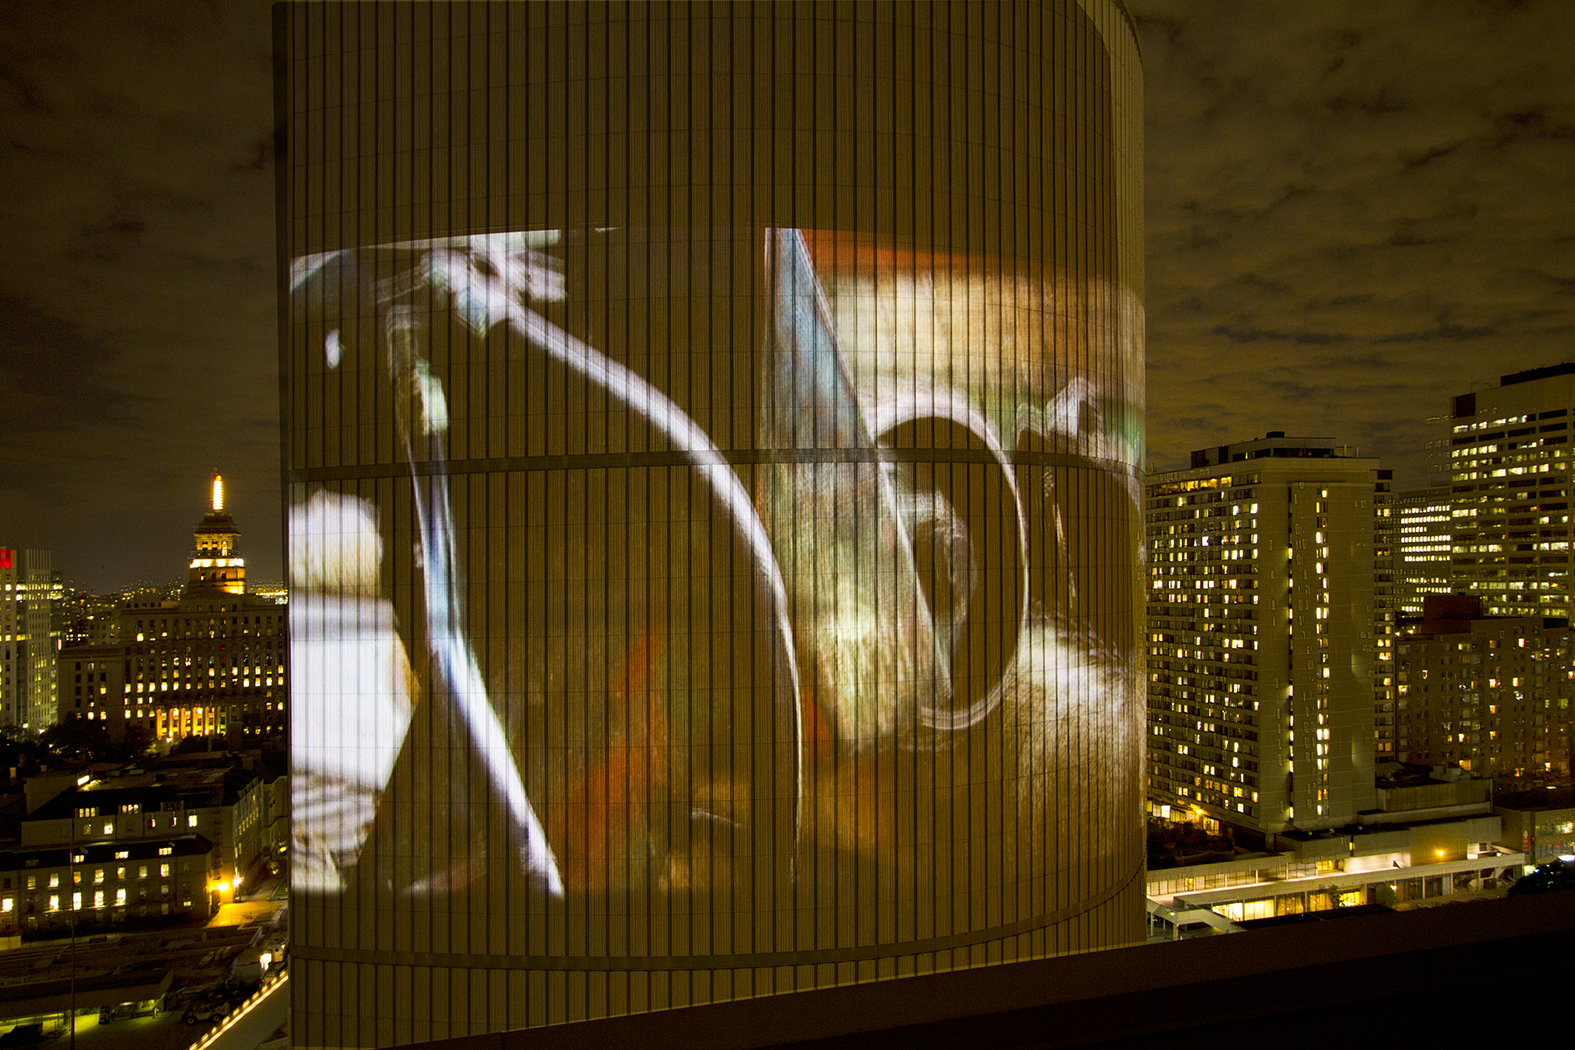 ONCE  UPON A TIME (2011-2012) HD VIDEO, SOUND 4.1, 9'16'' LOOP, SINGLE CHANNEL INSTALLATION